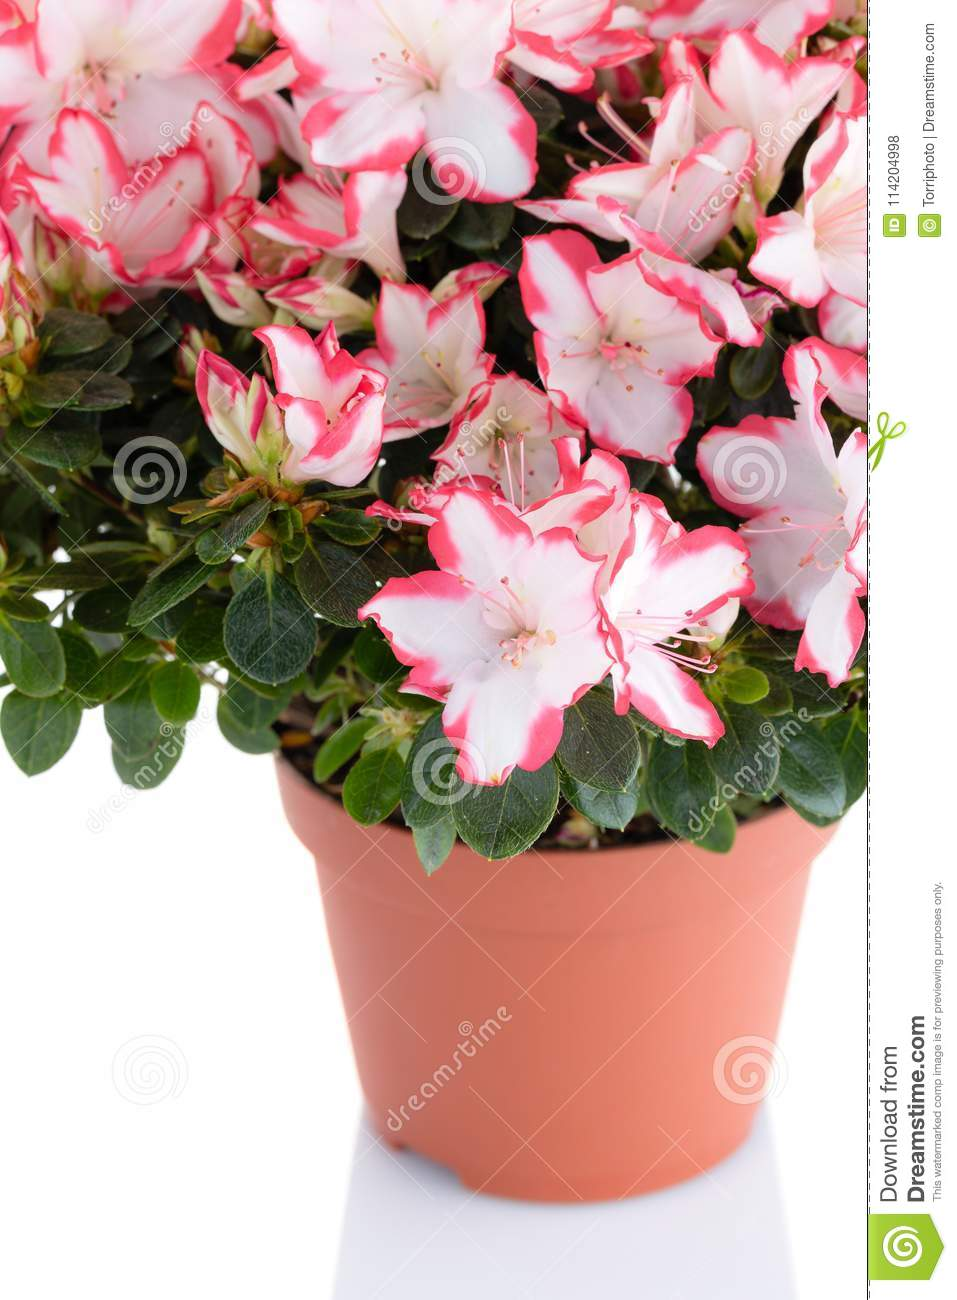 Blooming plant of azalea in flower pot isolated on white backgro lush blooming plant of azalea in flower pot isolated on white background pink and white rhododendron flower shop and care for house plants concept mightylinksfo